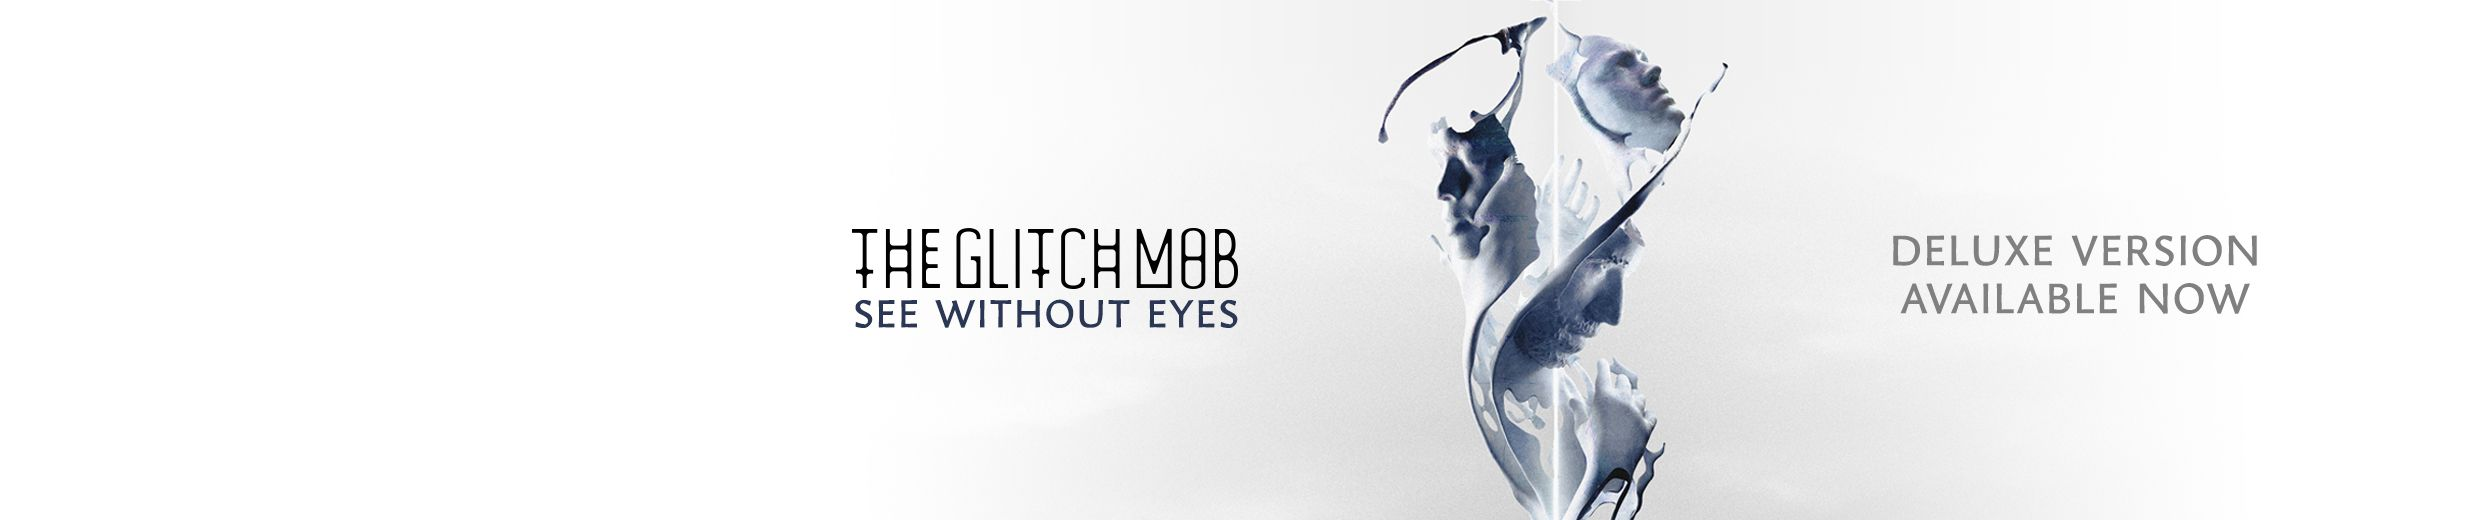 the glitch mob - warrior concerto mp3